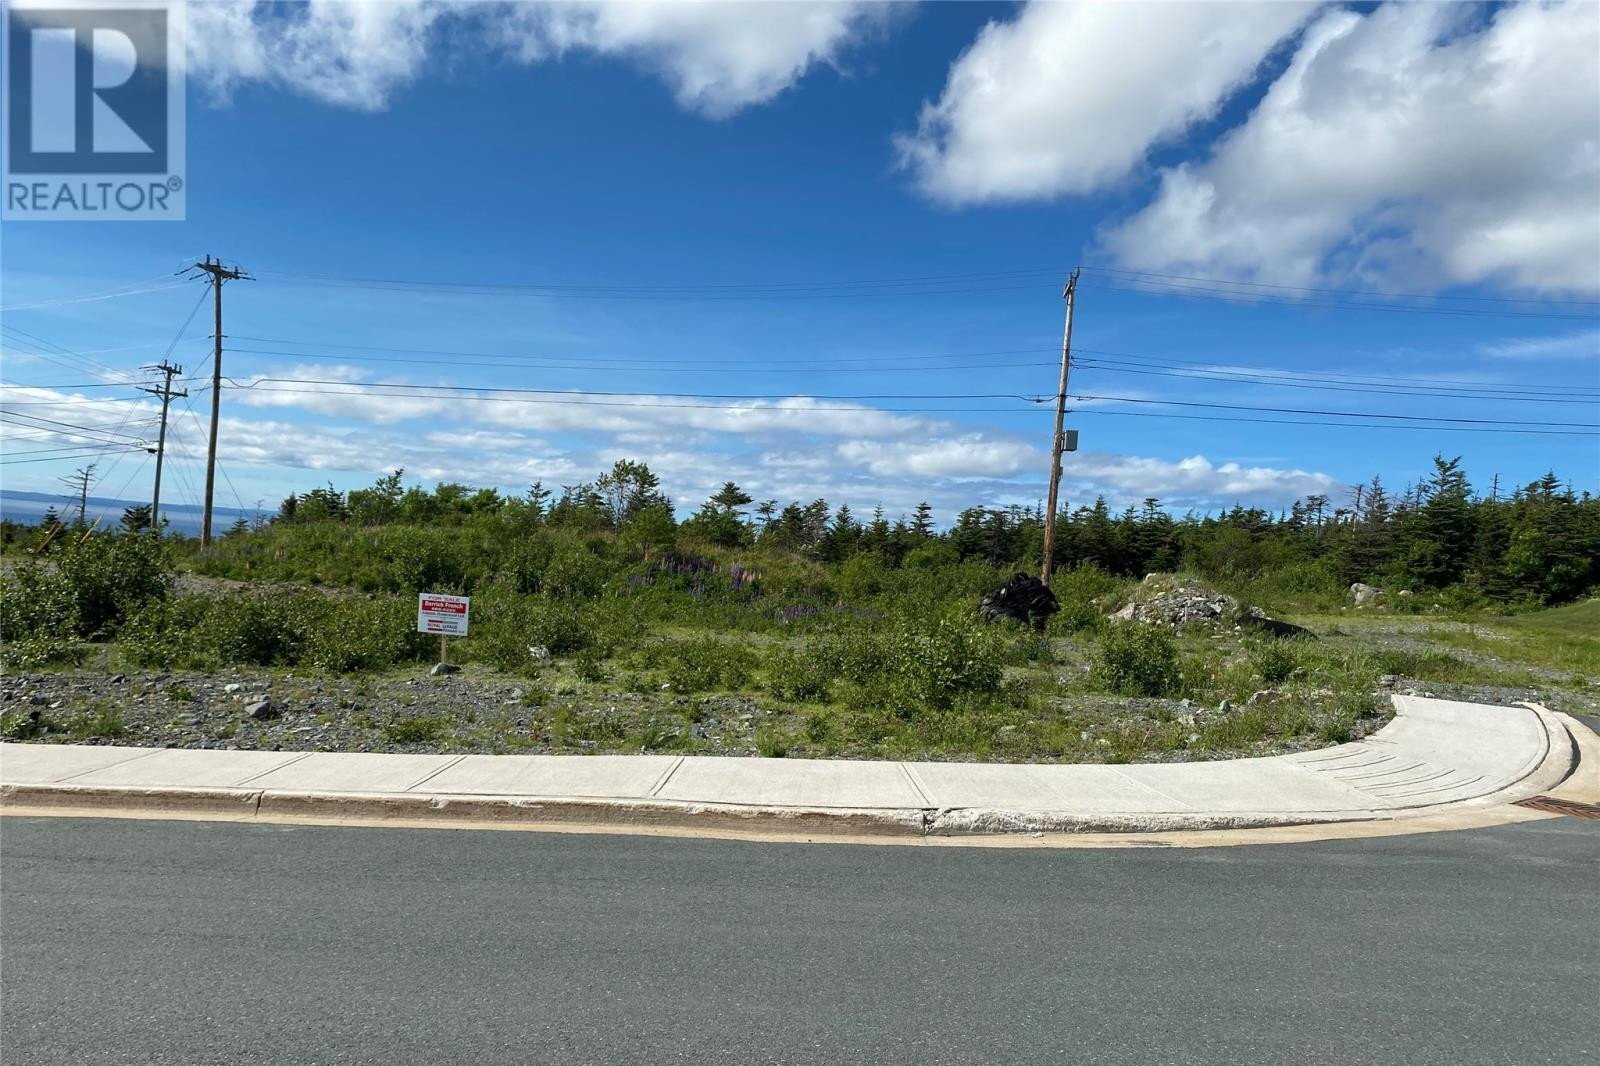 Home for sale at 51 Kirkston Ave Conception Bay South Newfoundland - MLS: 1216257